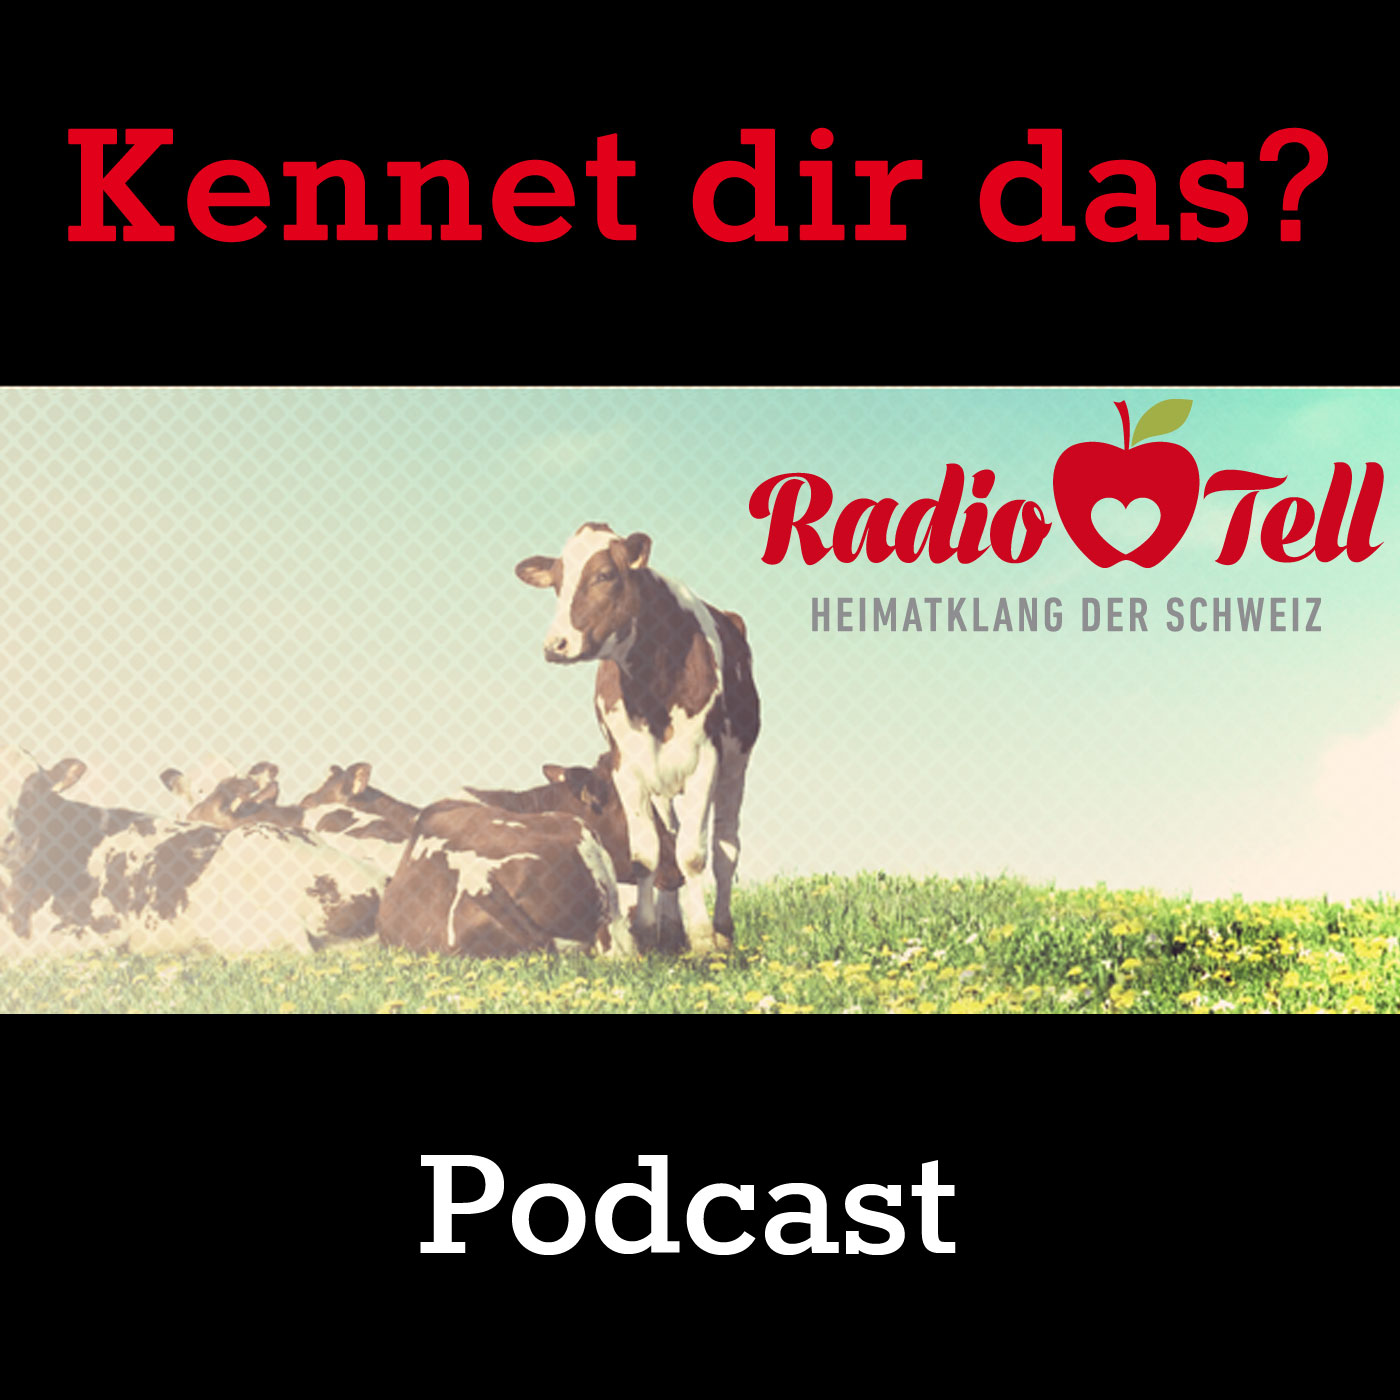 Radio Tell - Kennet dir das